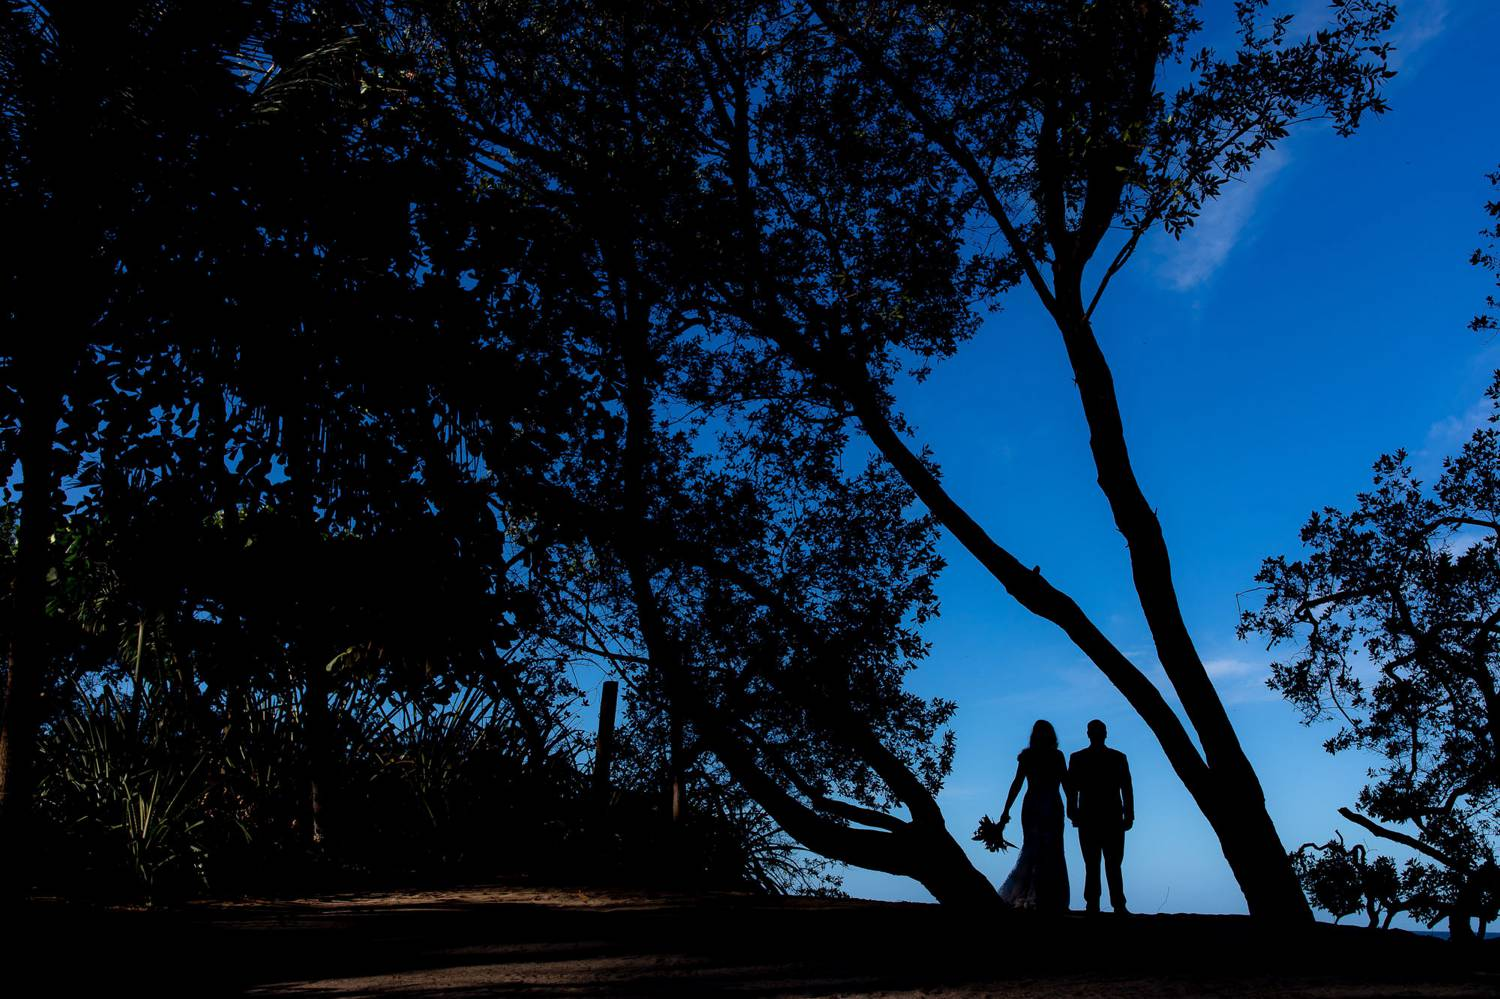 In this photo by Kevin Heslin a wedding couple is silhouetted by a deep blue sky as they pose between overgrown trees on a beach.